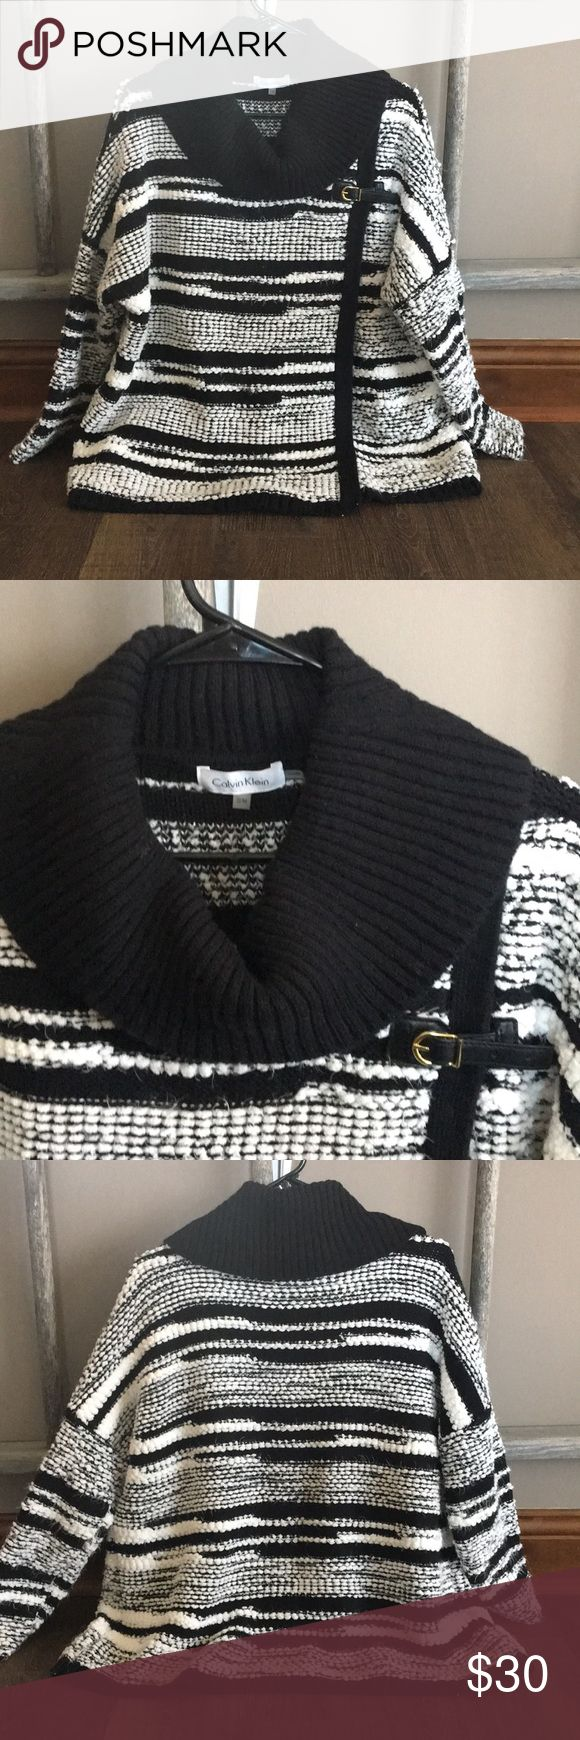 Calvin Klein Sweater Top Small Medium Black White Oversized Chunky Knit Comfy Cozy Sweater. Worn Once Calvin Klein Sweaters Shrugs & Ponchos